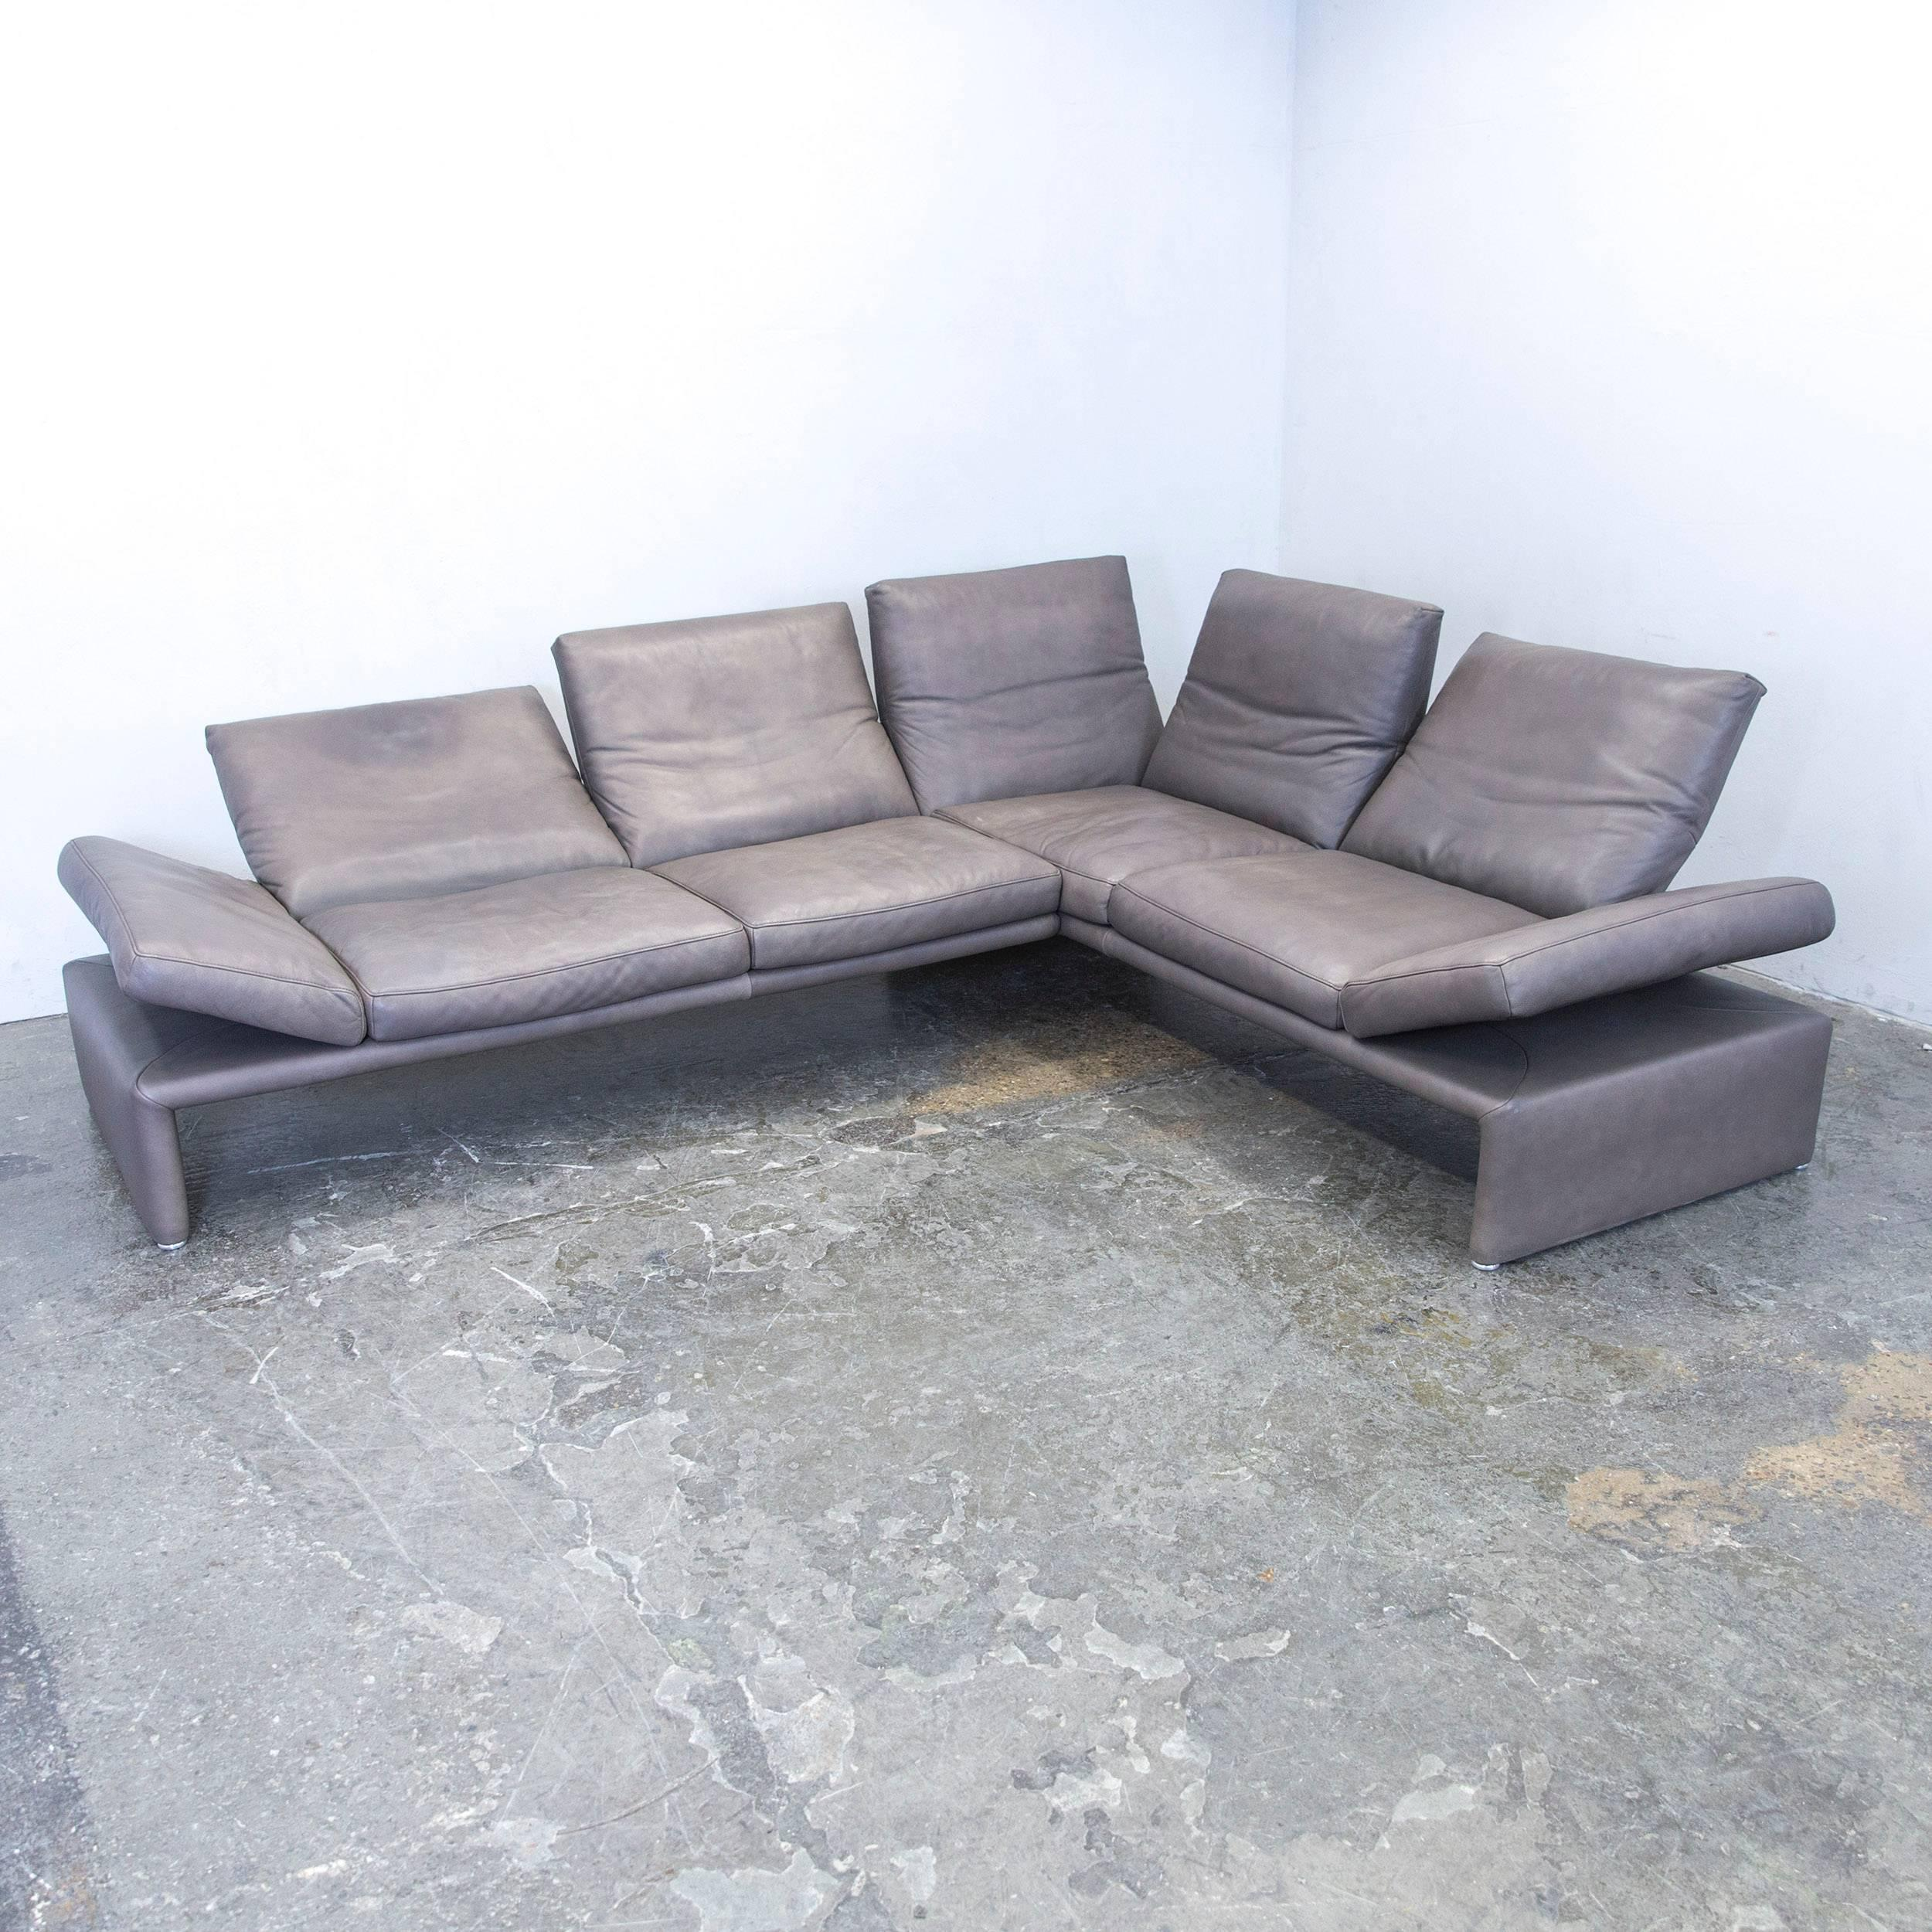 Brown Colored Original Koinor Raoul Designer Leather Sofa, In A  Minimalistic And Modern Design,